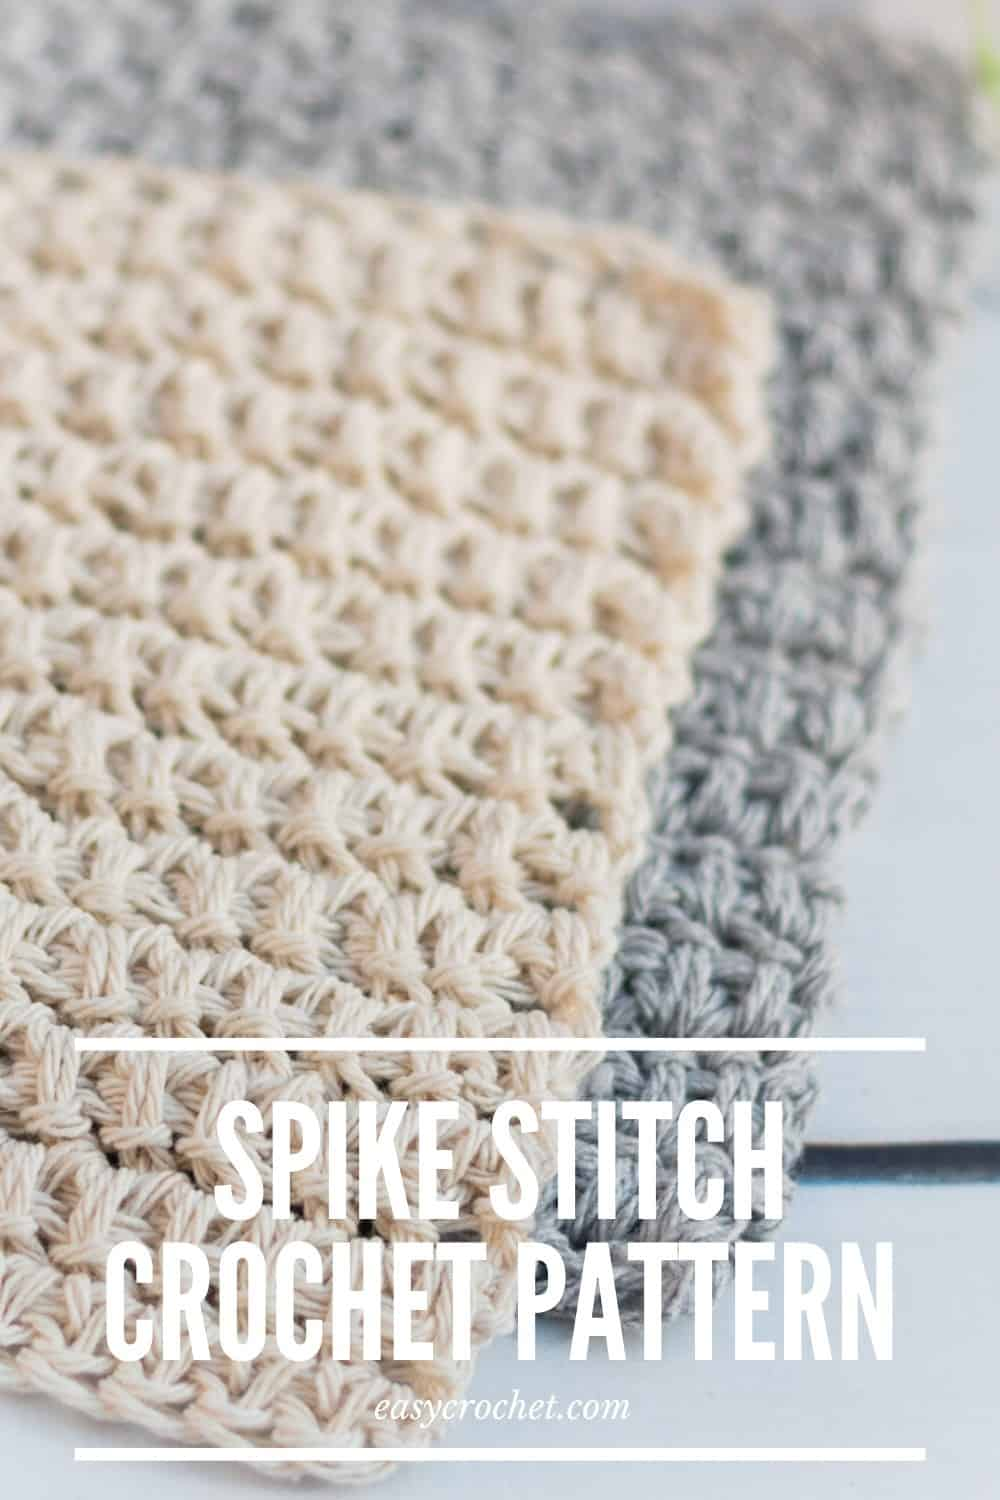 Free Spike Stitch Crochet Dishcloth Pattern via @easycrochetcom